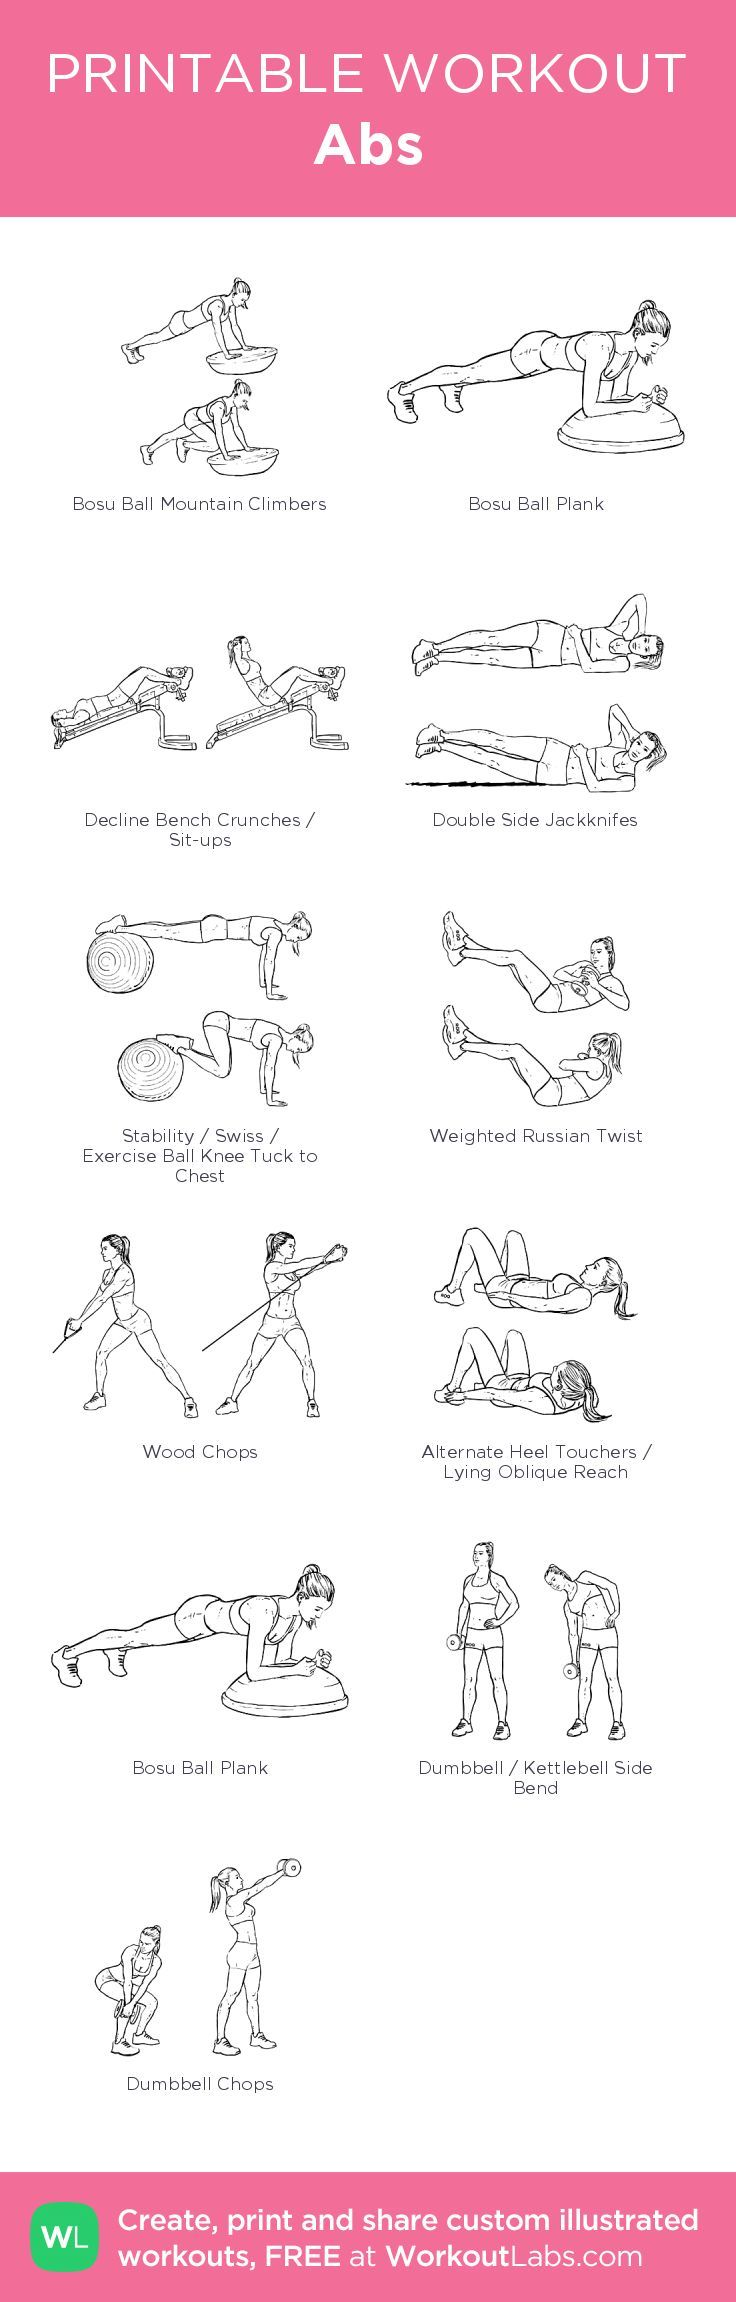 Abs–my custom exercise plan created at WorkoutLabs.com • Click through to download as a printable workout PDF #customworkout